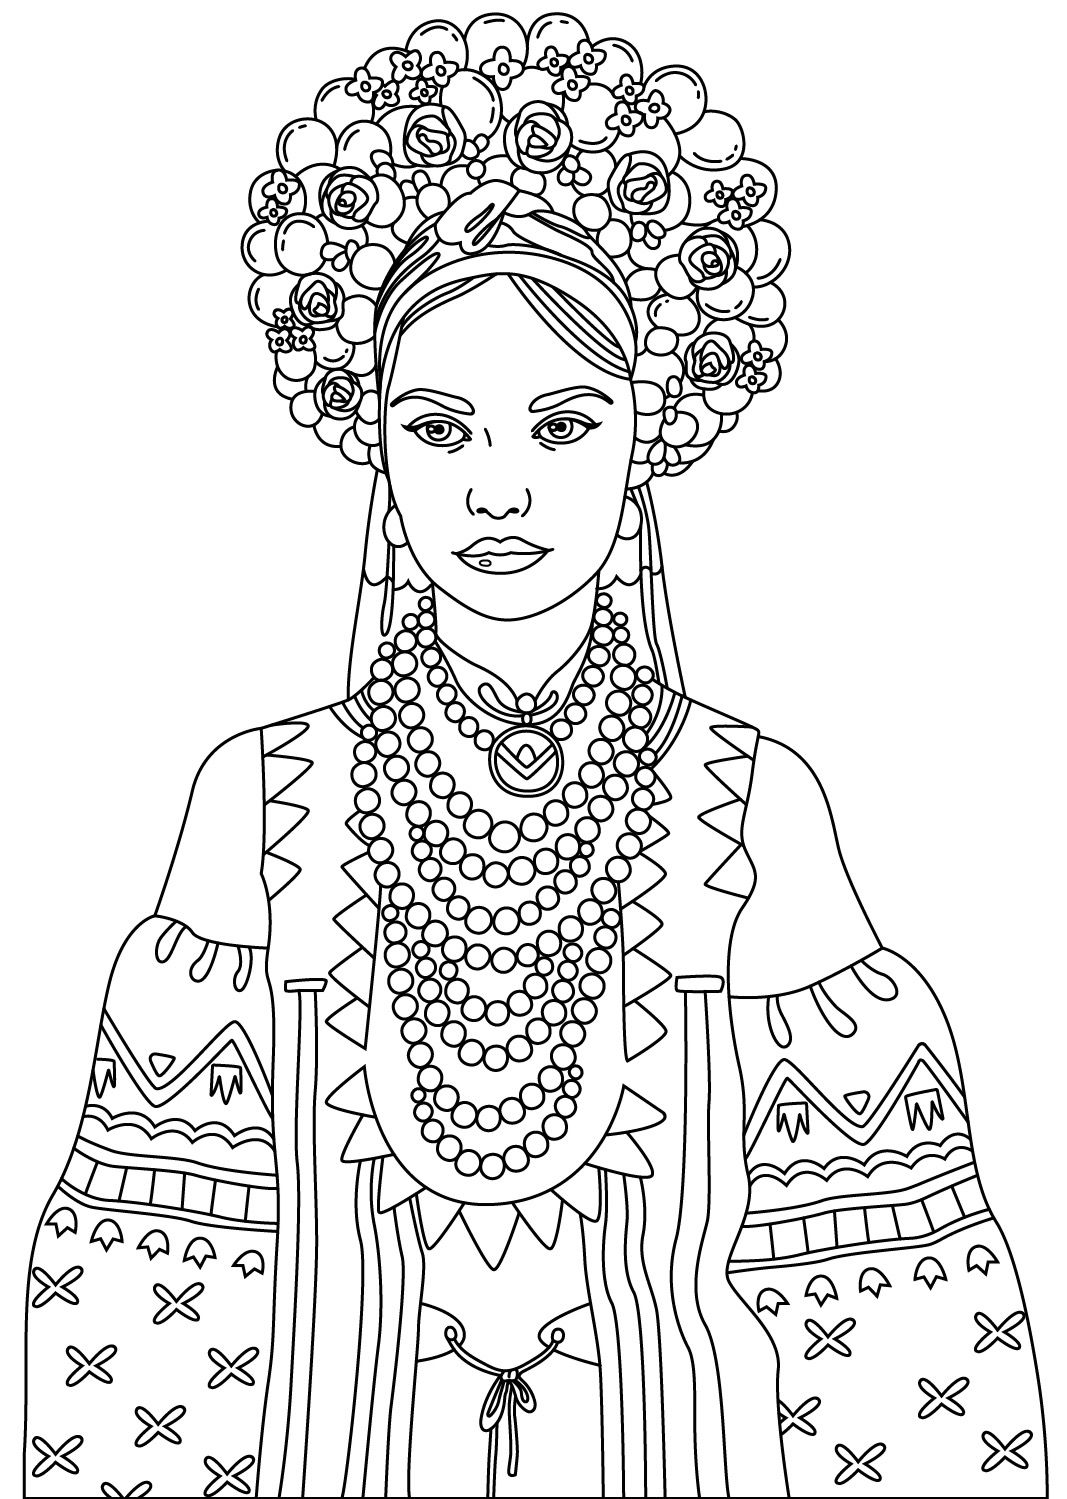 Women To Color Colorish Free Coloring App For Adults By Goodsofttech Witch Coloring Pages Coloring Pages Horse Coloring Pages